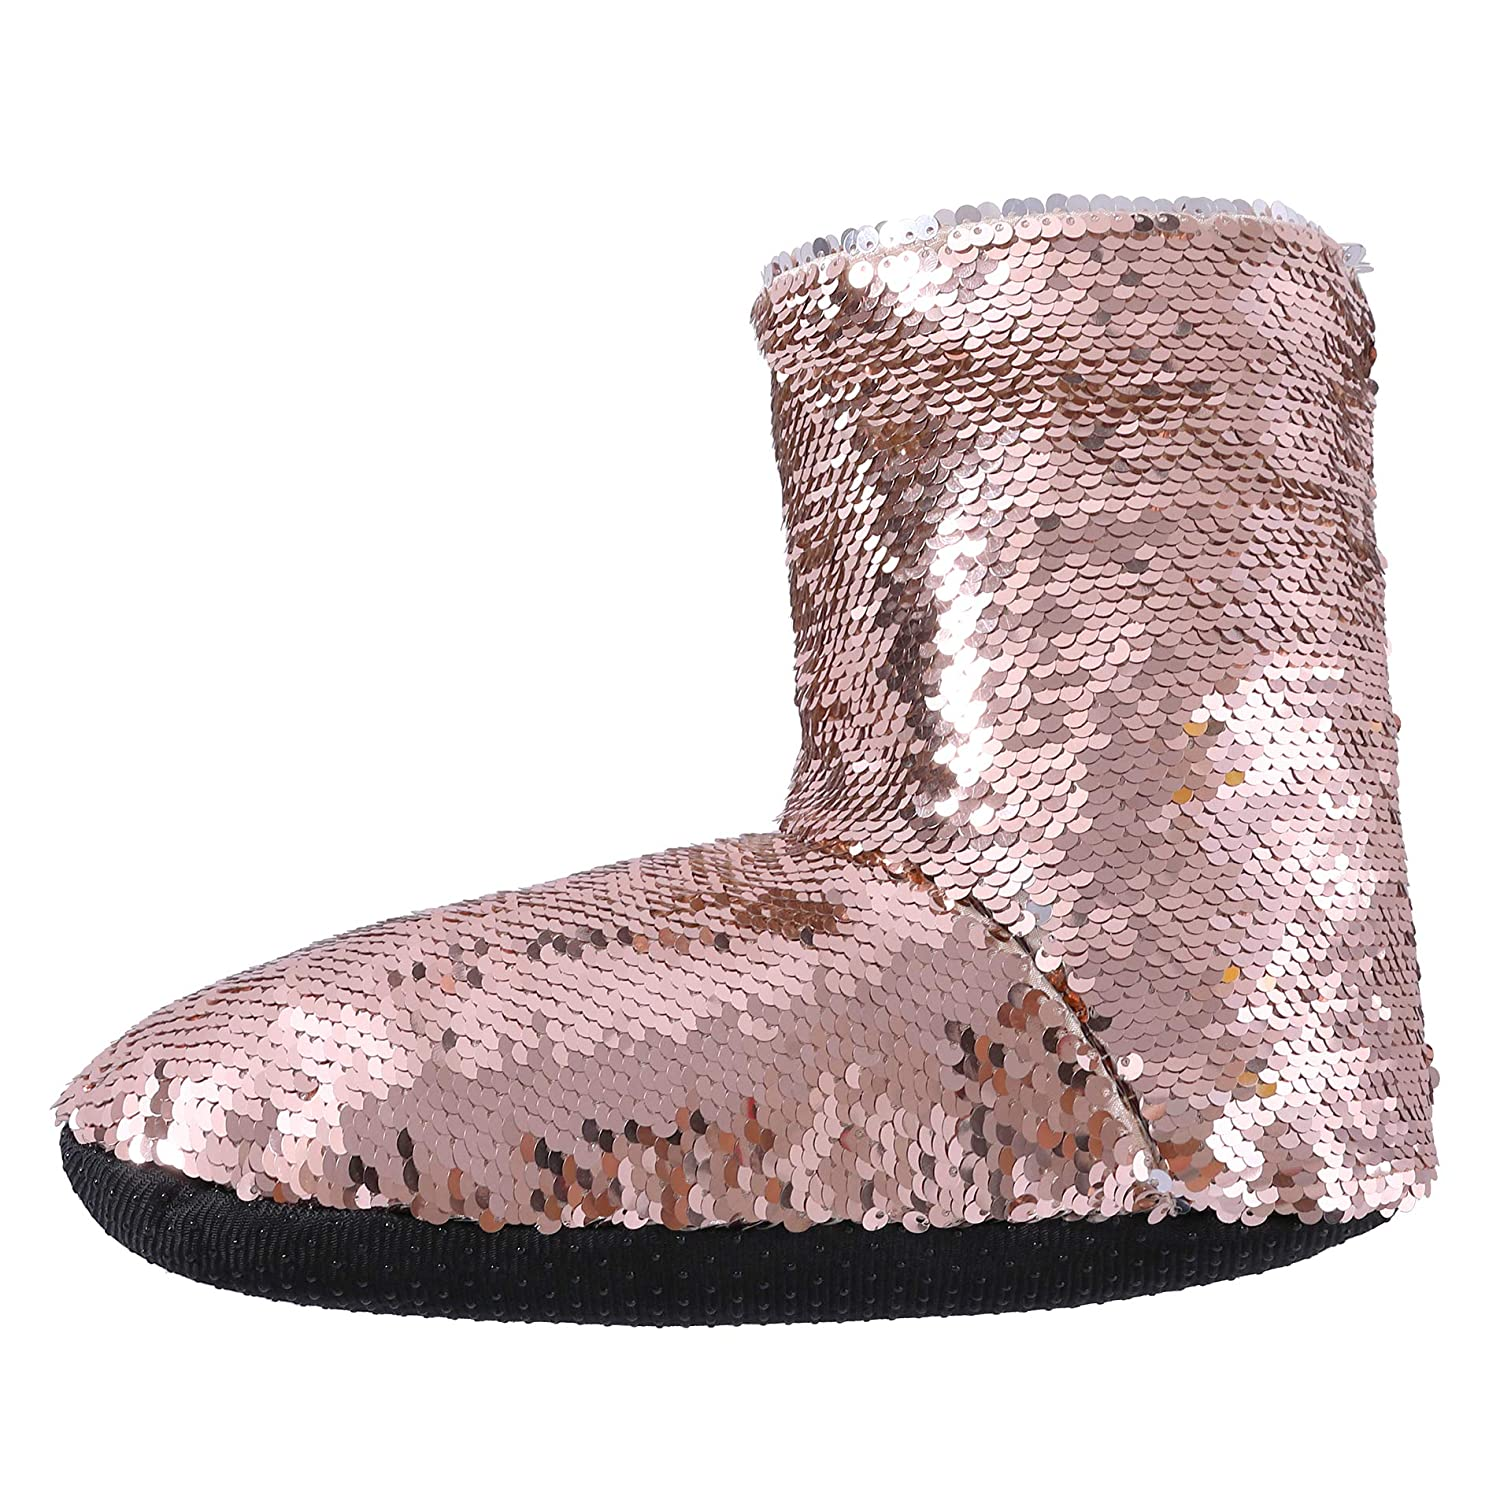 f97bf60869e3 Amazon.com | RONGBLUE Women's Christmas Reversible Sequin Slippers Socks  Soft Warm Fleece Lining Non-Slip Shoes Winter Boots | Slippers